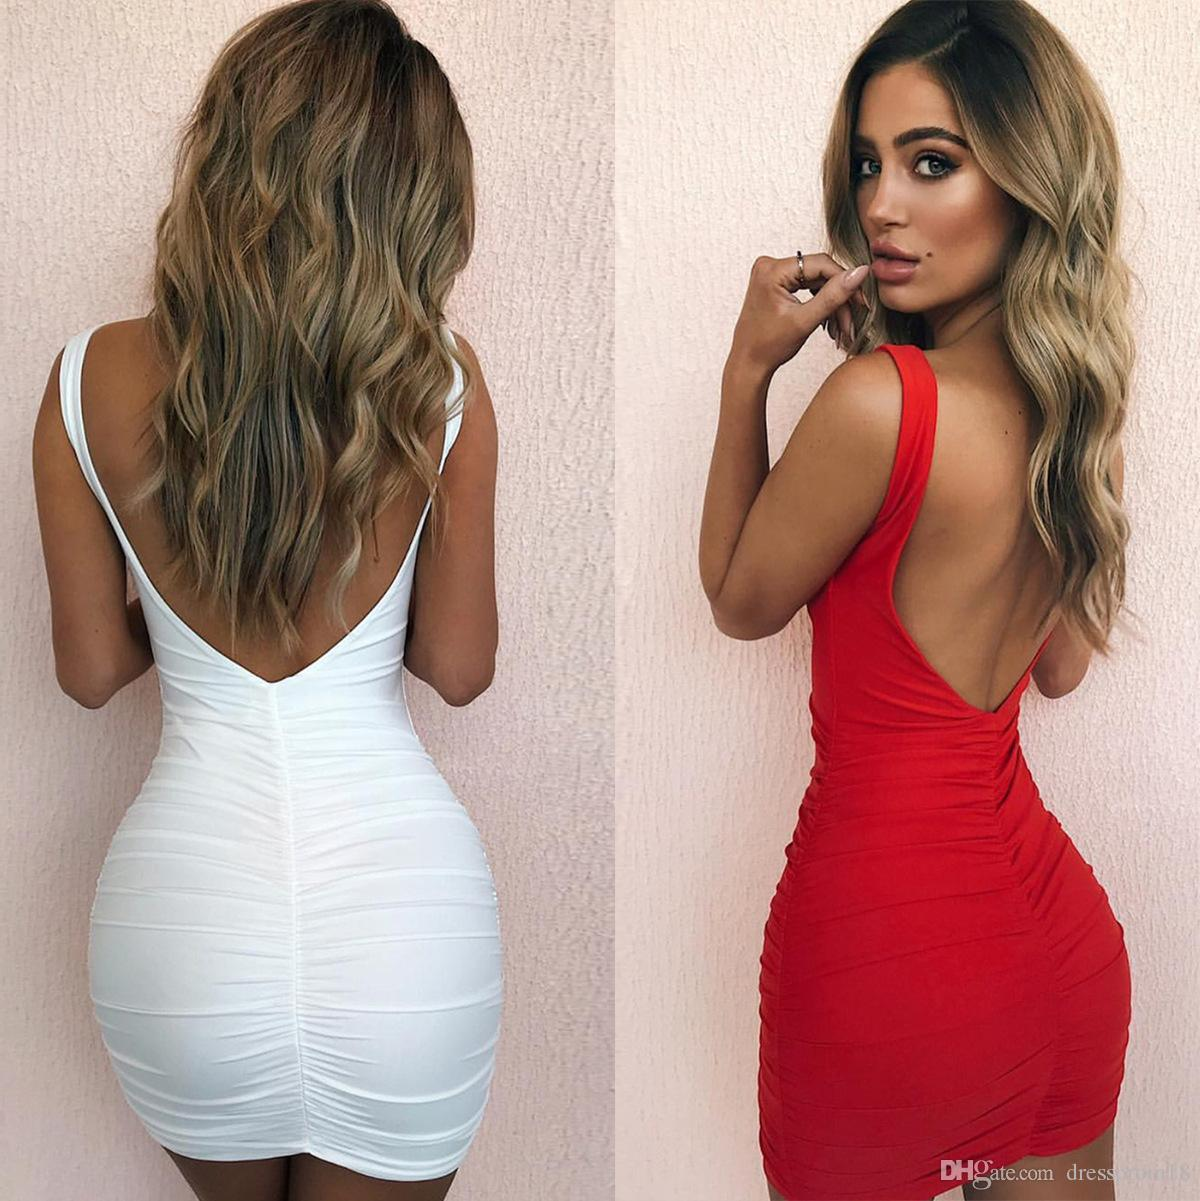 Low Backed Dresses